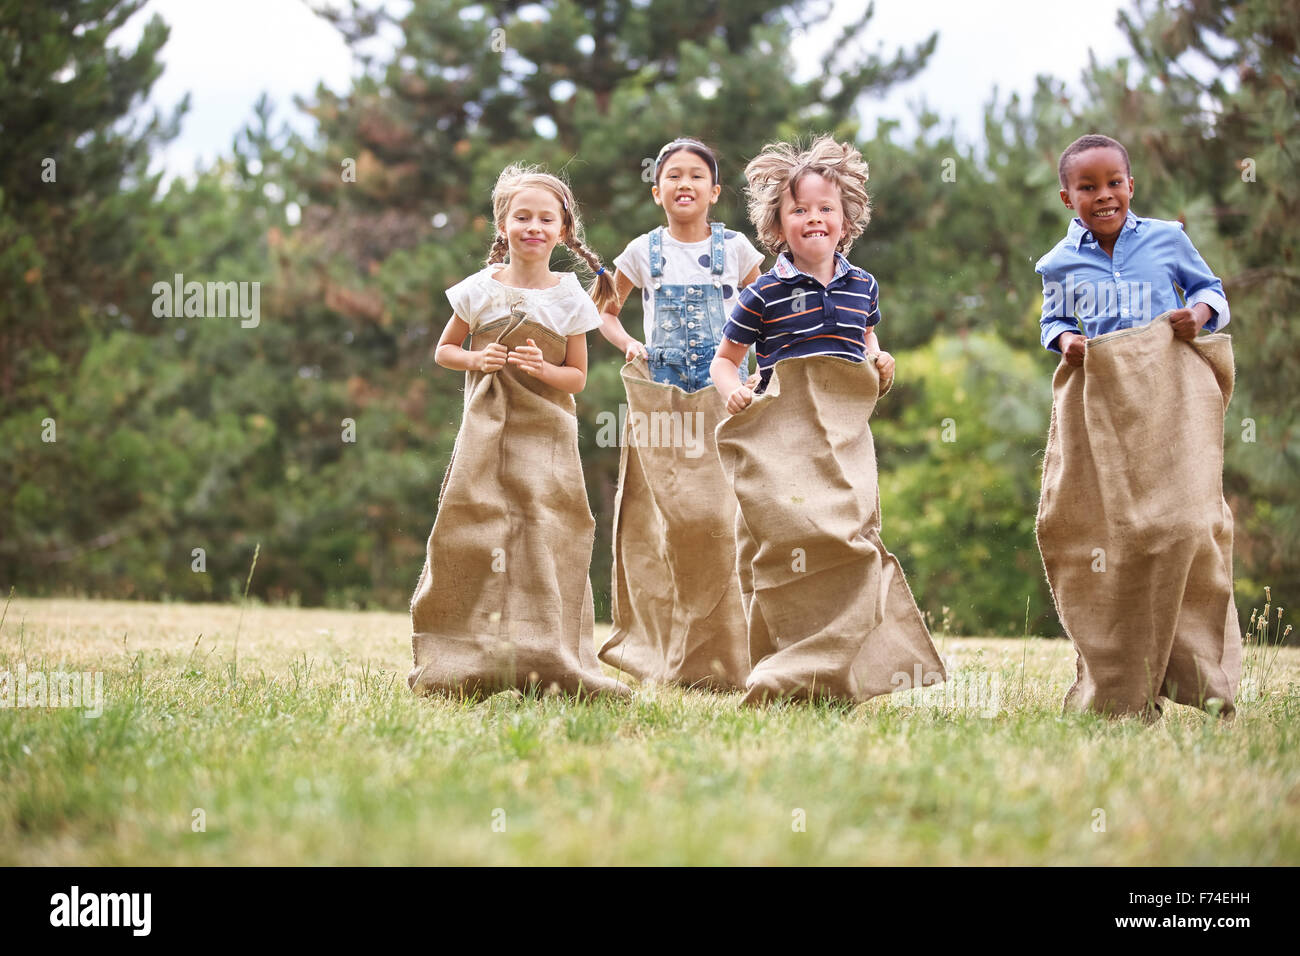 Kids having fun at sack race at the park - Stock Image